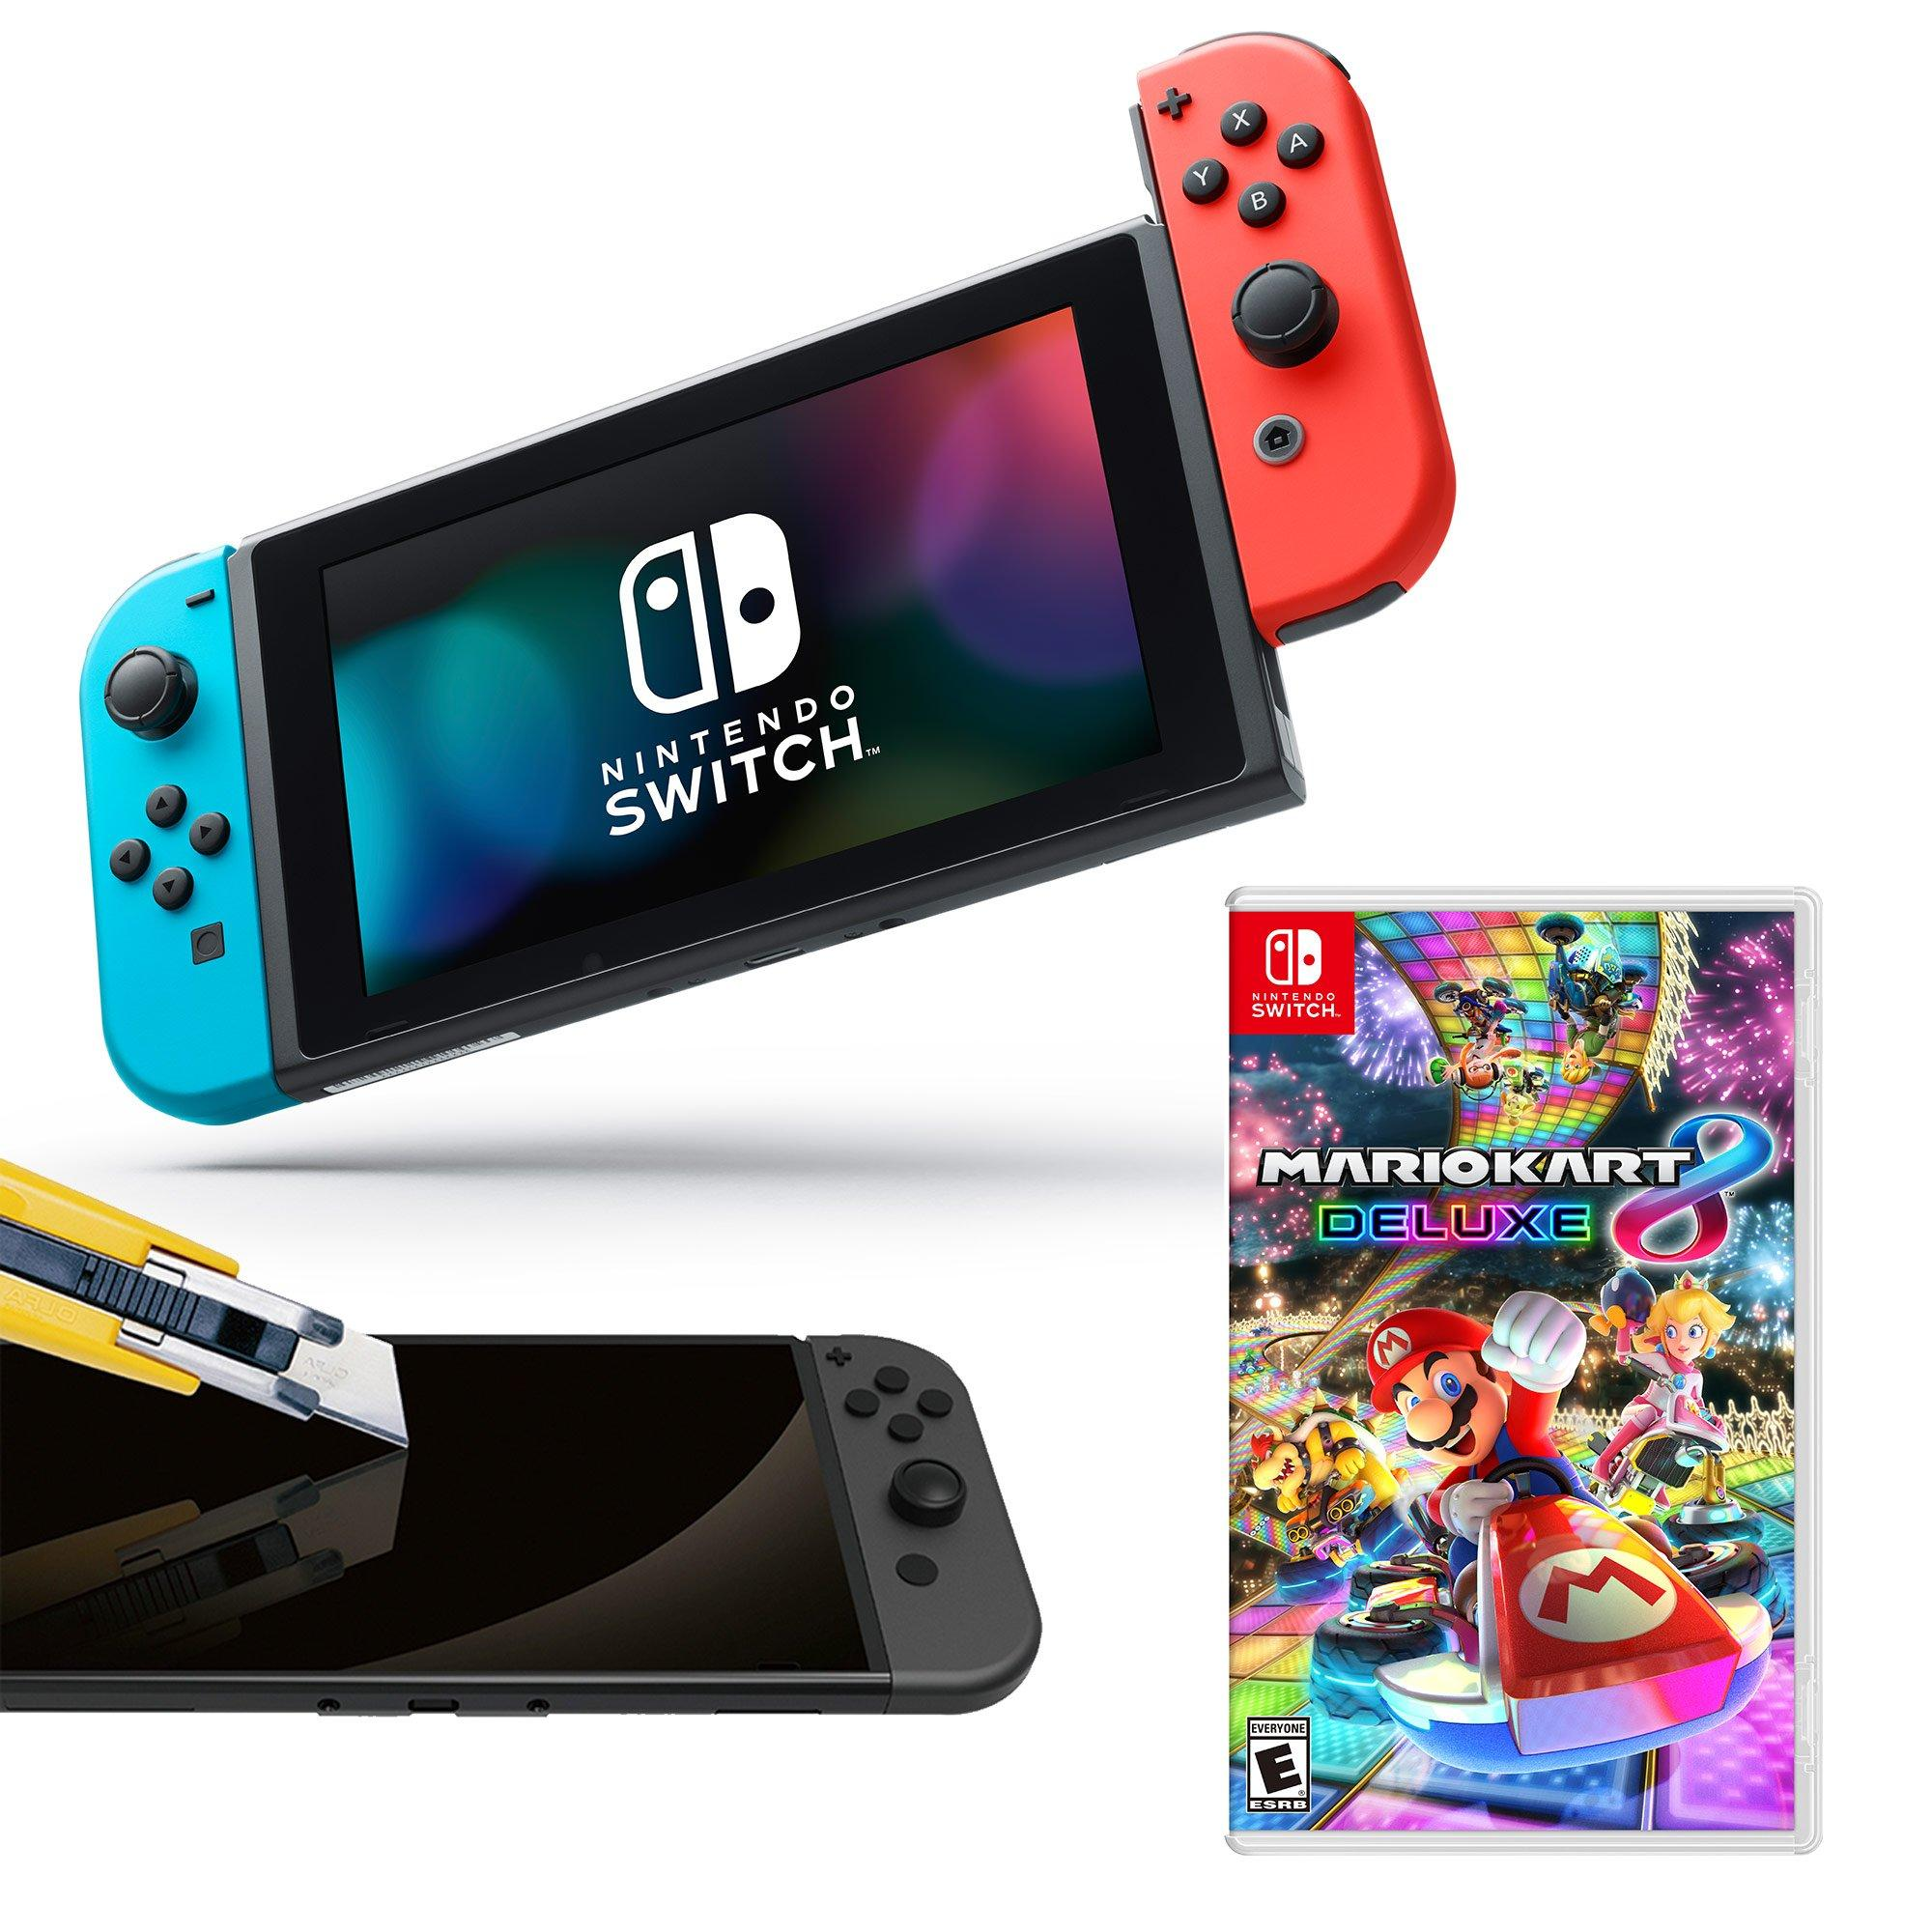 Nintendo Switch Neon Joy Con With Screen Protector And Mario Kart